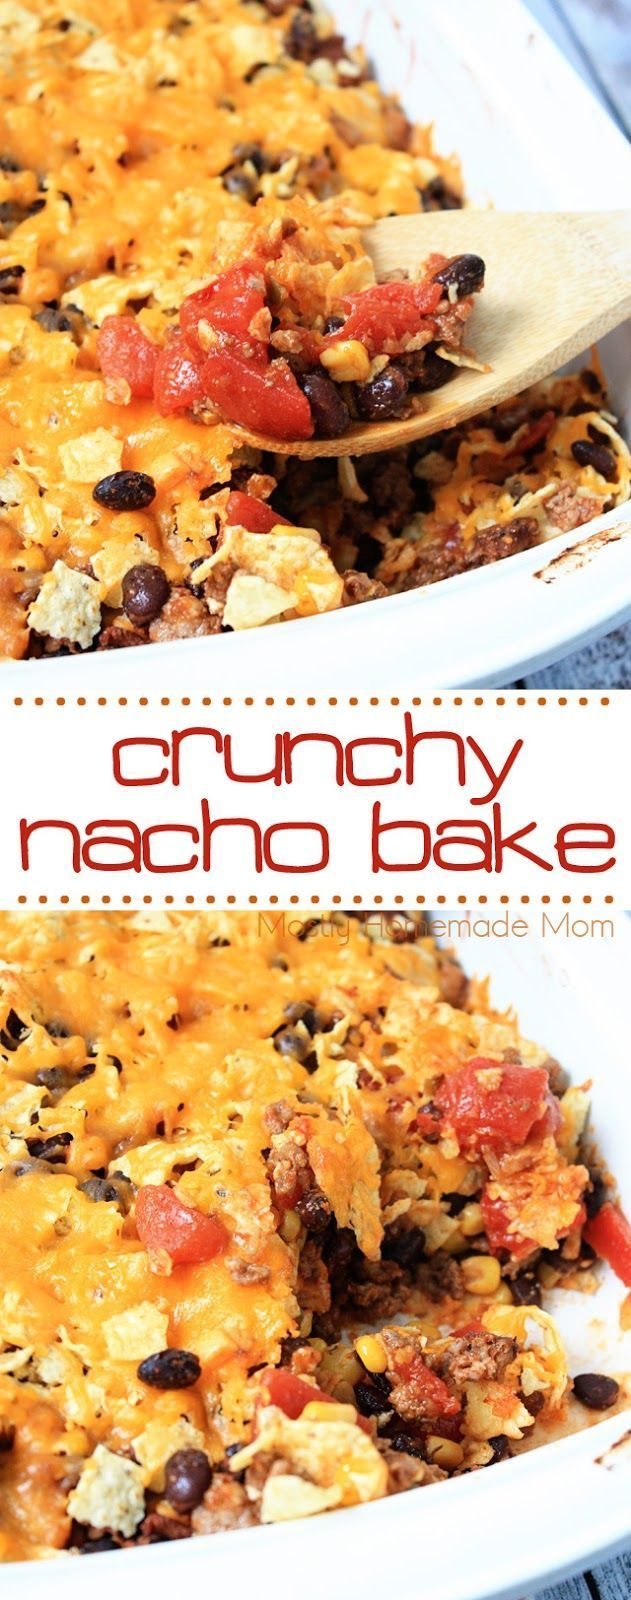 Crunchy Nacho Bake - the perfect weeknight dinner! If your family loves tacos and Mexican food, they will LOVE this casserole recipe!